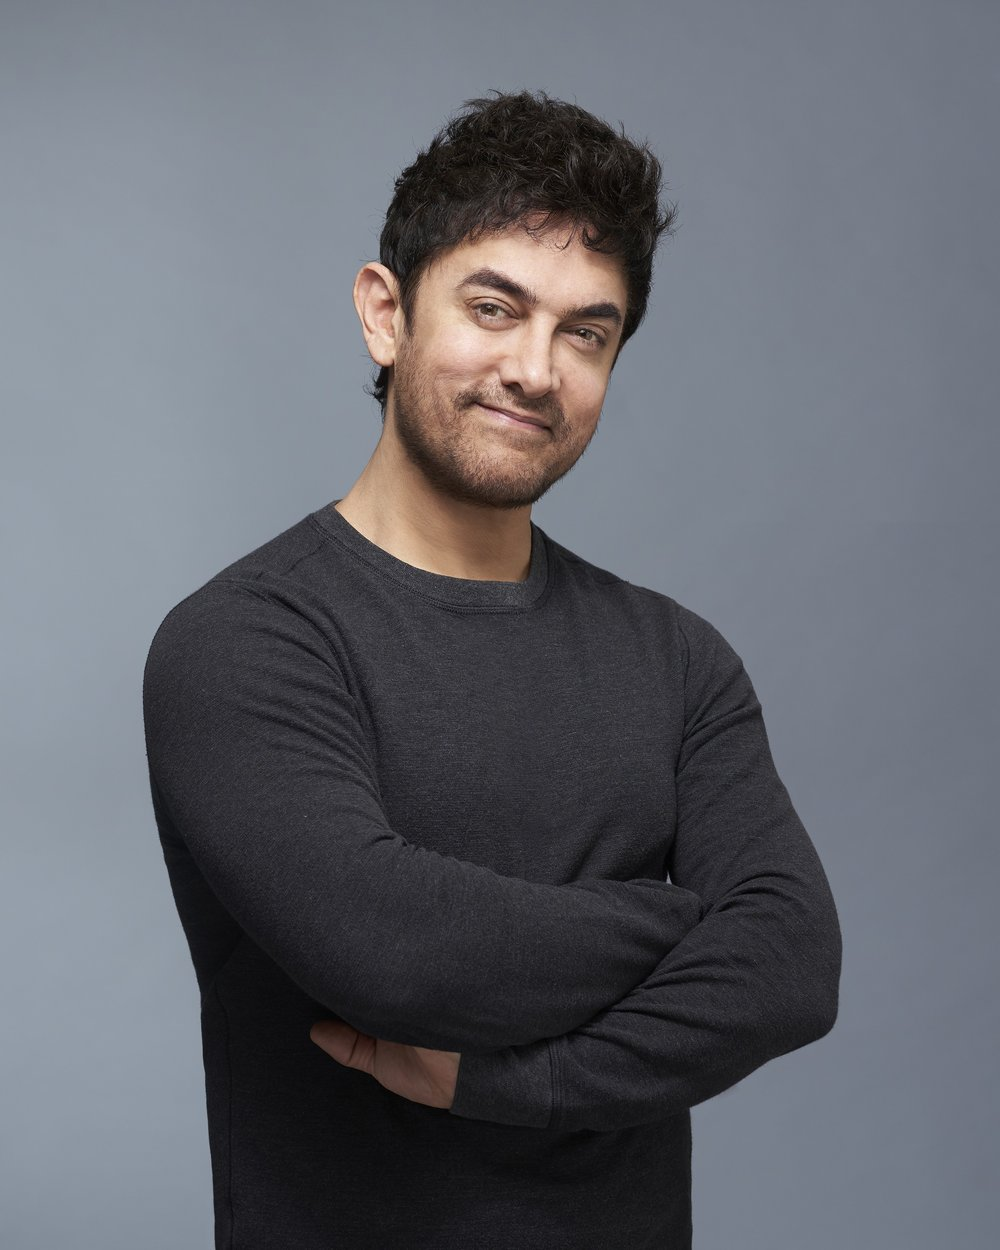 Photo caption: Indian film star Aamir Khan, who will be attending Belfast Film Festival in April.